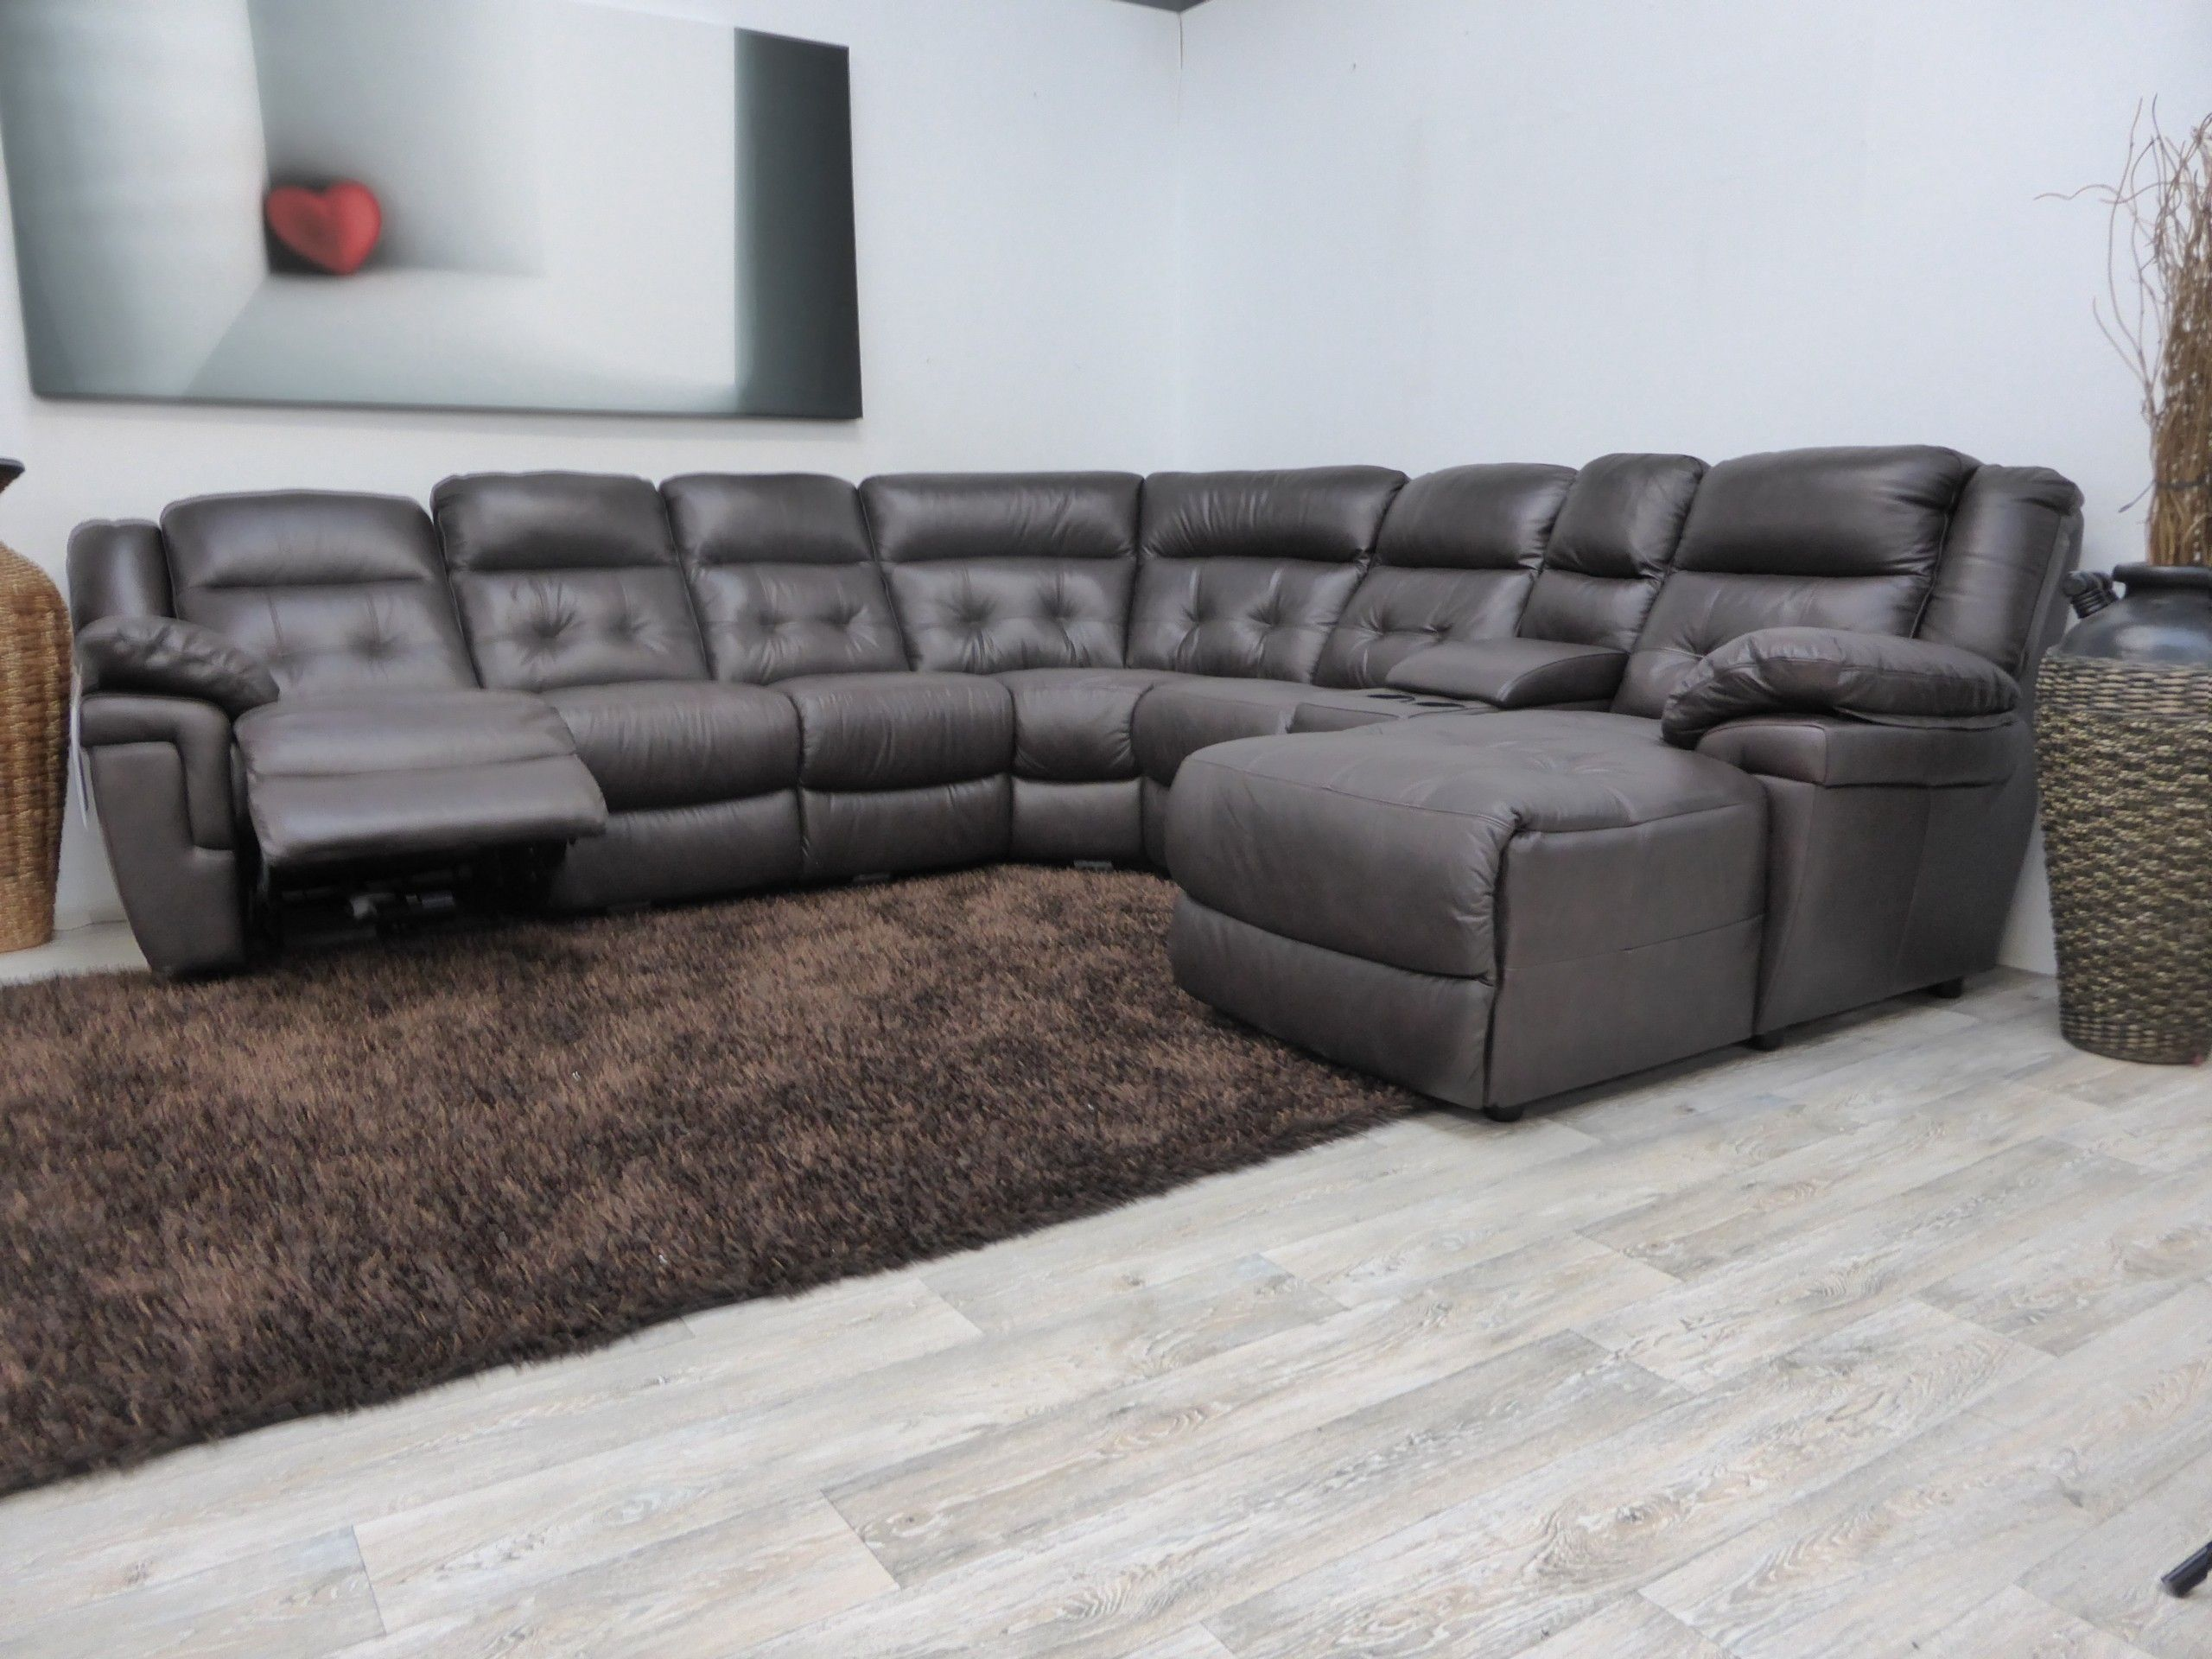 Superb Furniture Living Room L Shaped Gray Leather Sectional Sofa With Chaise And  Recliner Lazy Boy Leather